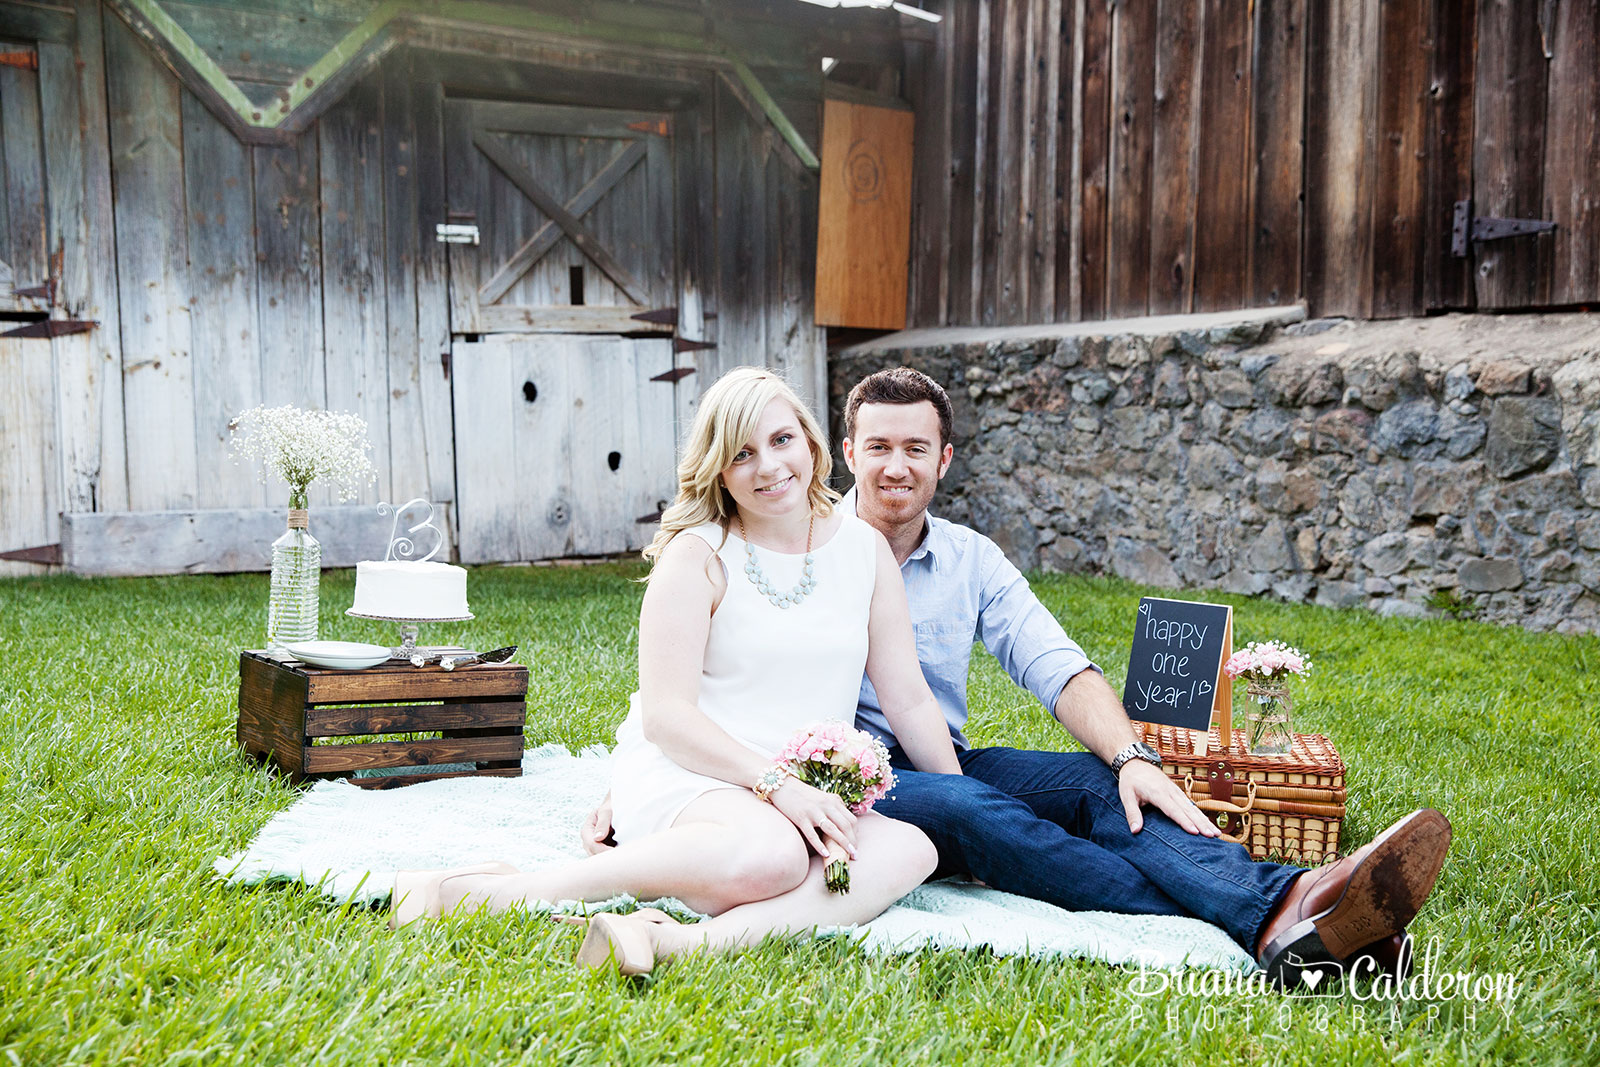 Styled picnic one year anniversary photo shoot at Pichetti Winery in Cupertino, CA.  Pictures by Briana Calderon Photography based in the San Francisco Bay Area.